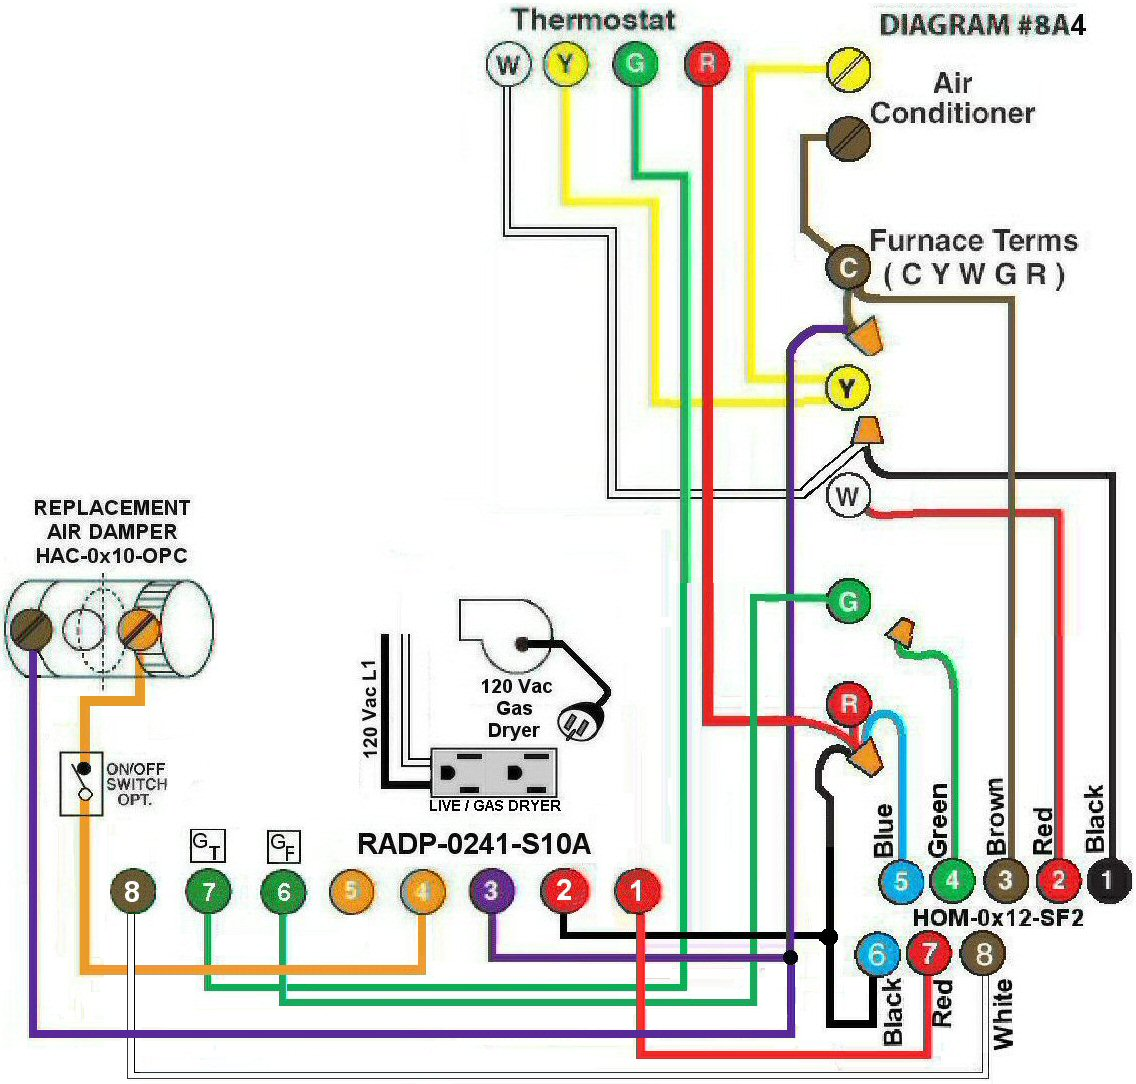 nordyne ac wiring diagram opel corsa intertherm sequencer air